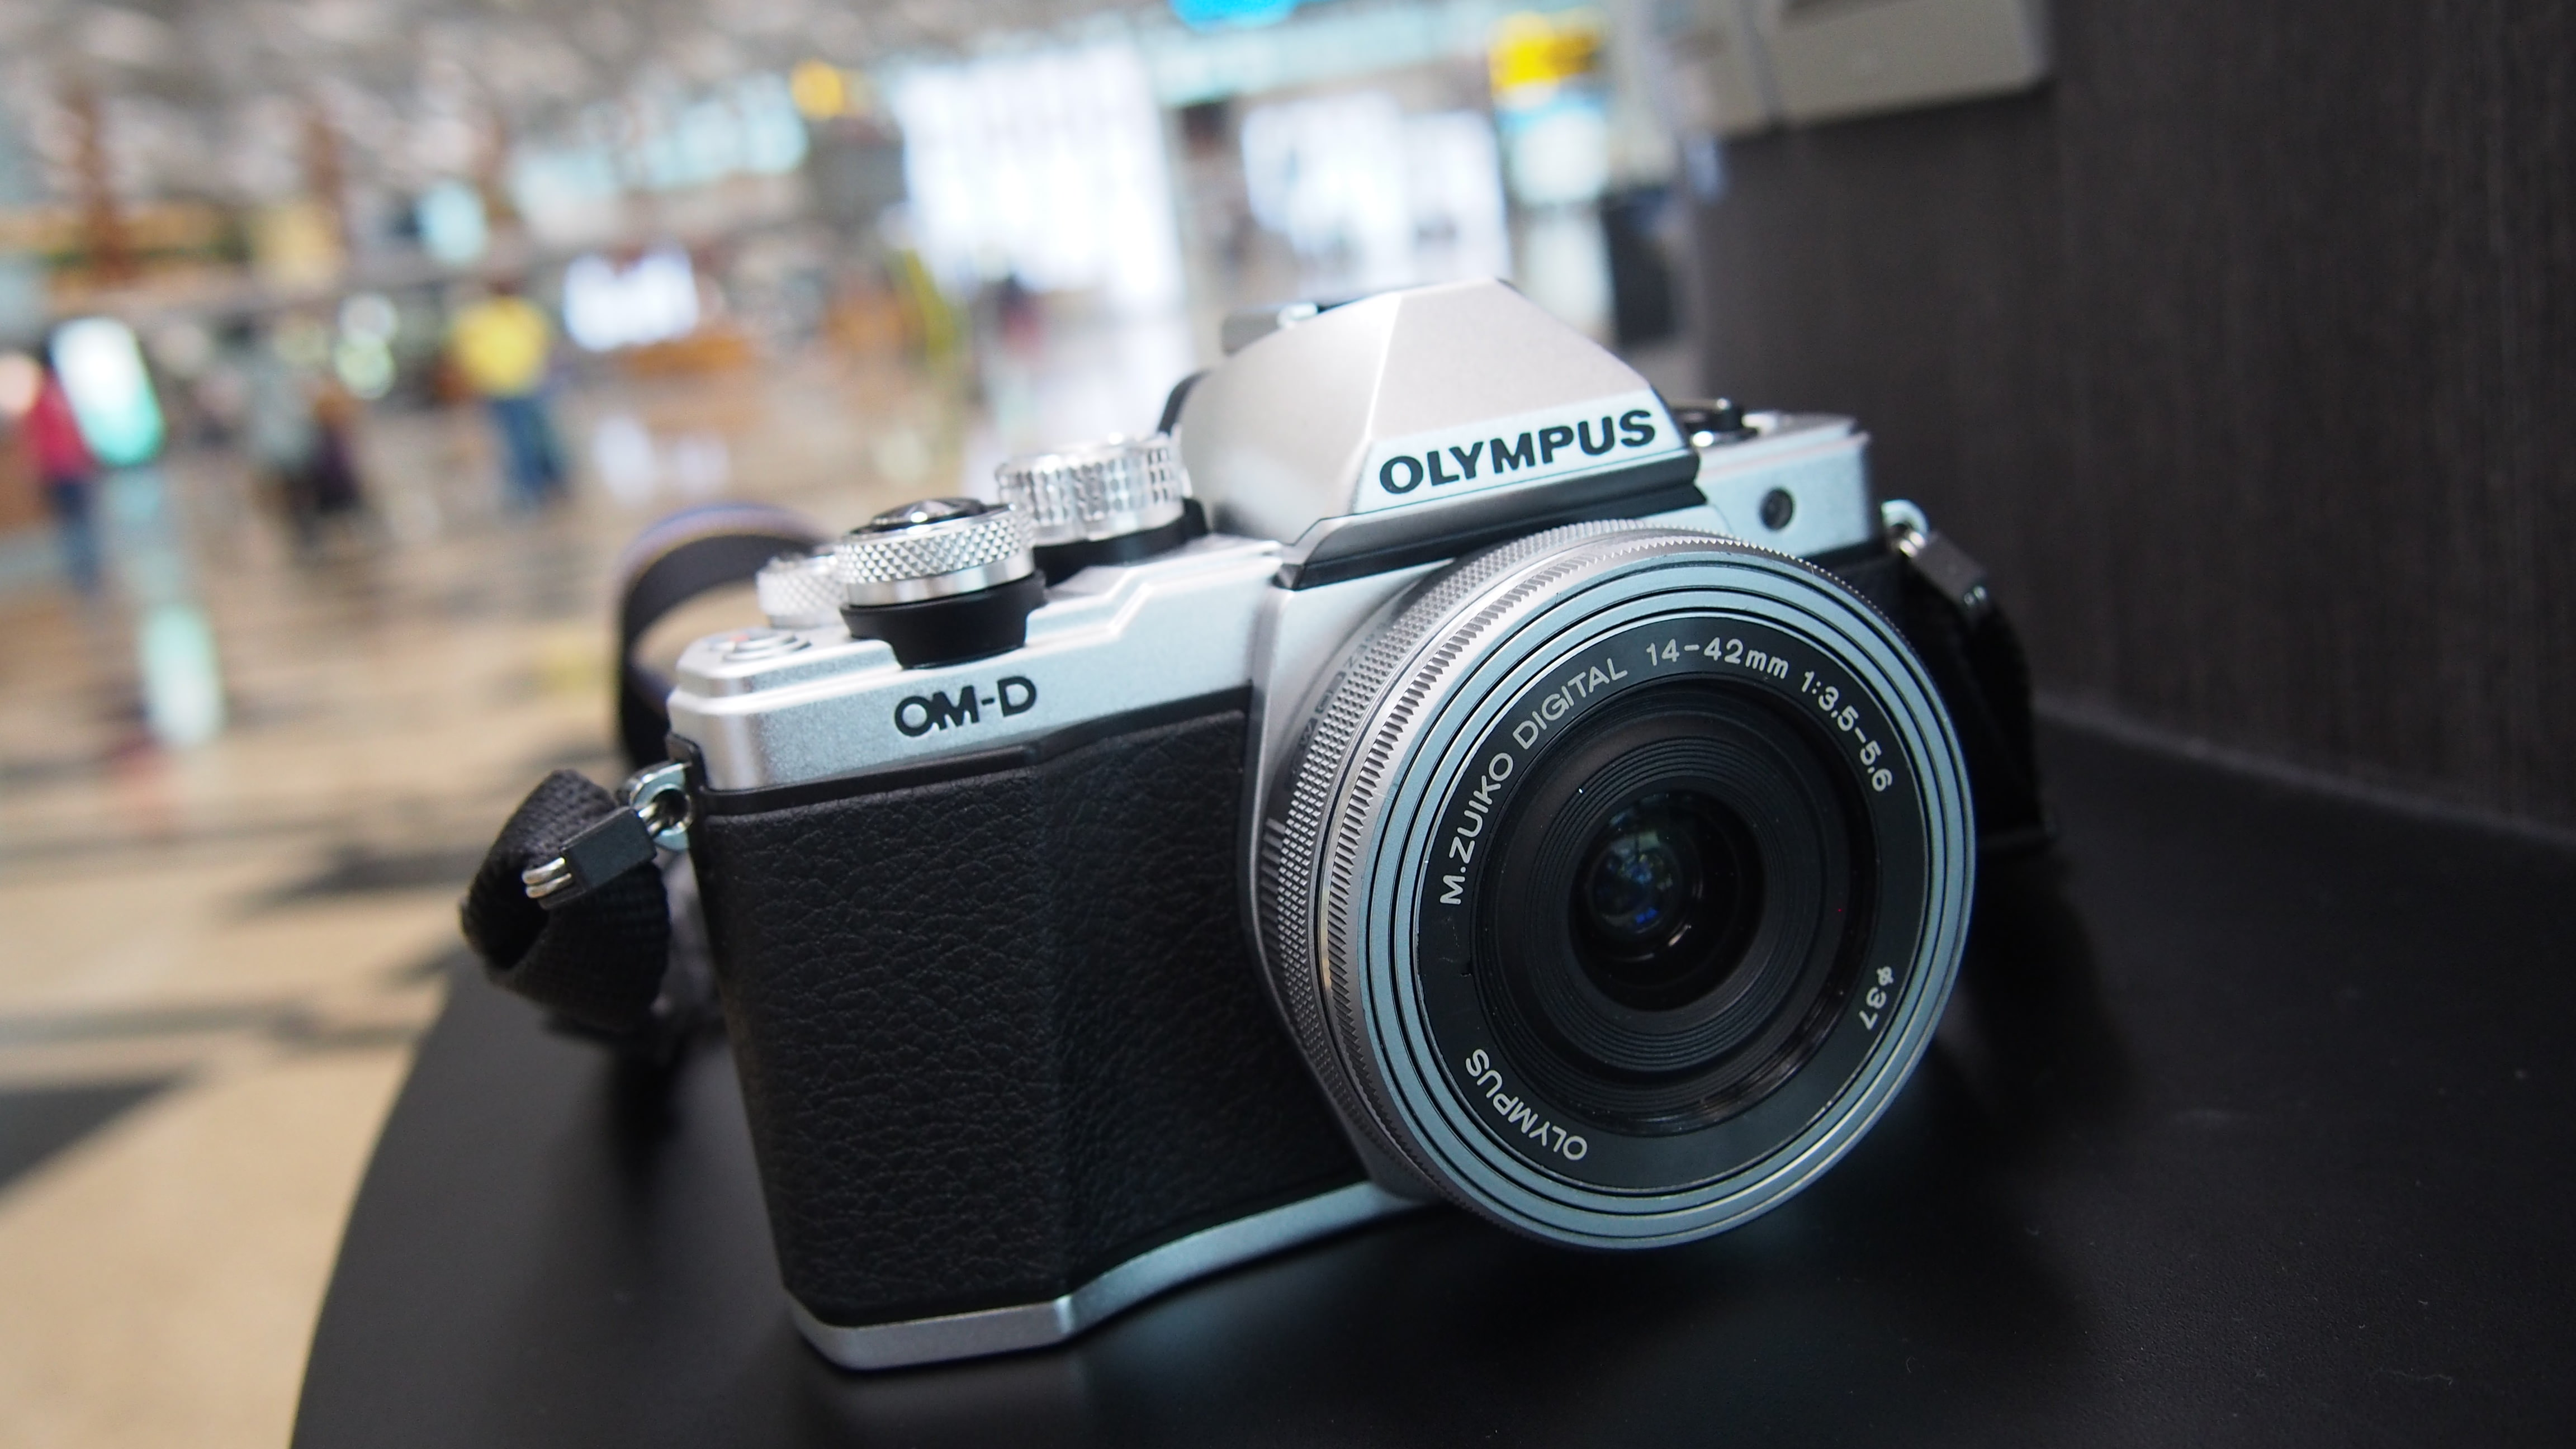 [Review] Ten Reasons to Love the NEW Olympus OM-D E-M10 Mark II - Alvinology